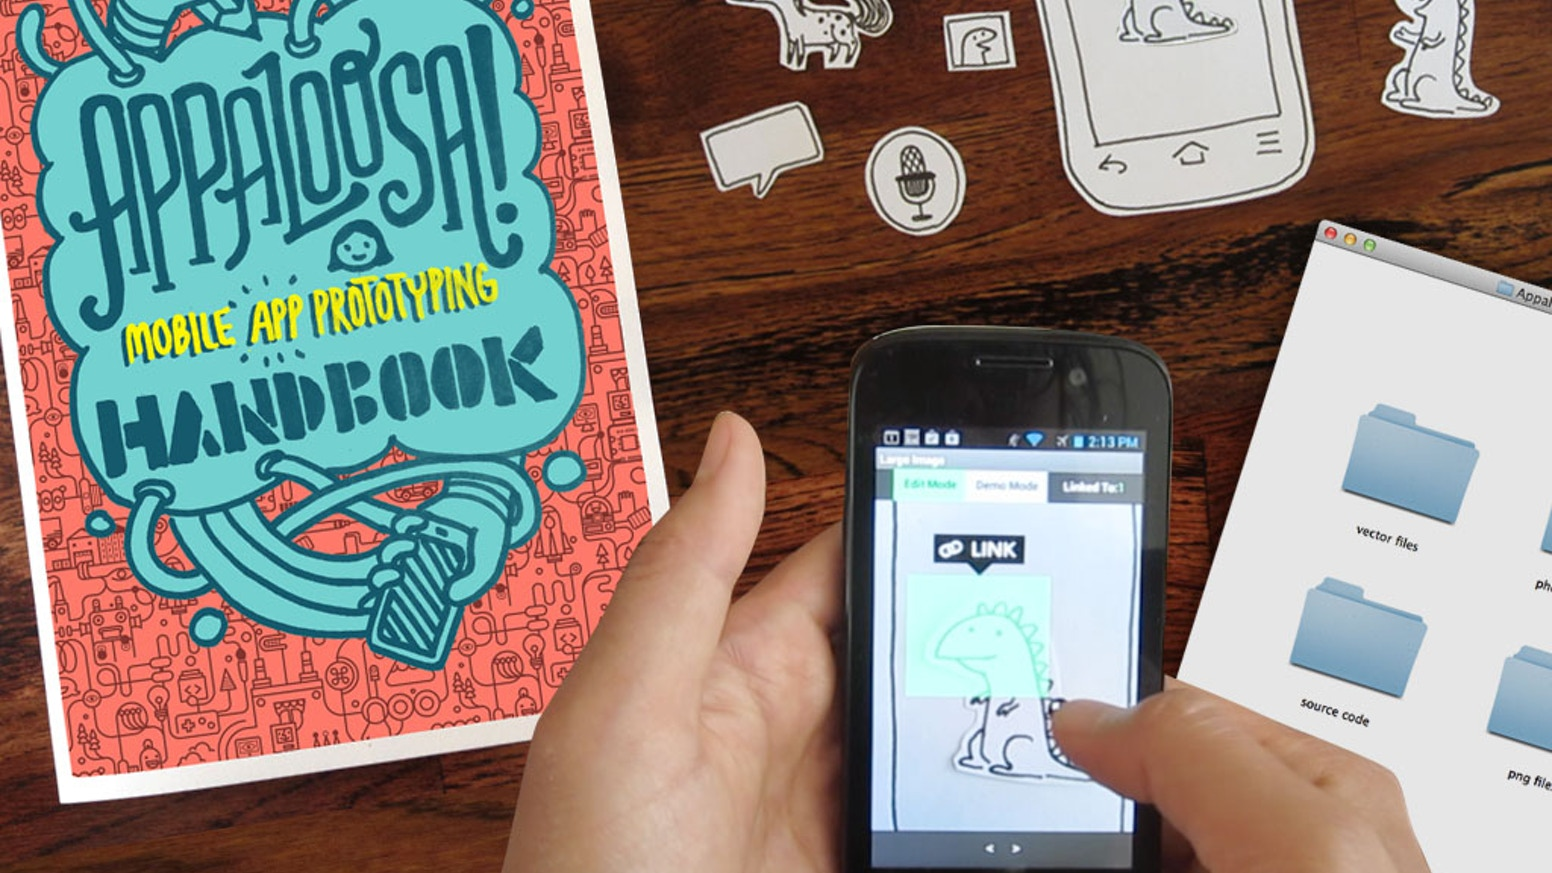 APPALOOSA! Mobile App Prototyping Kit for Curious Grrls  by